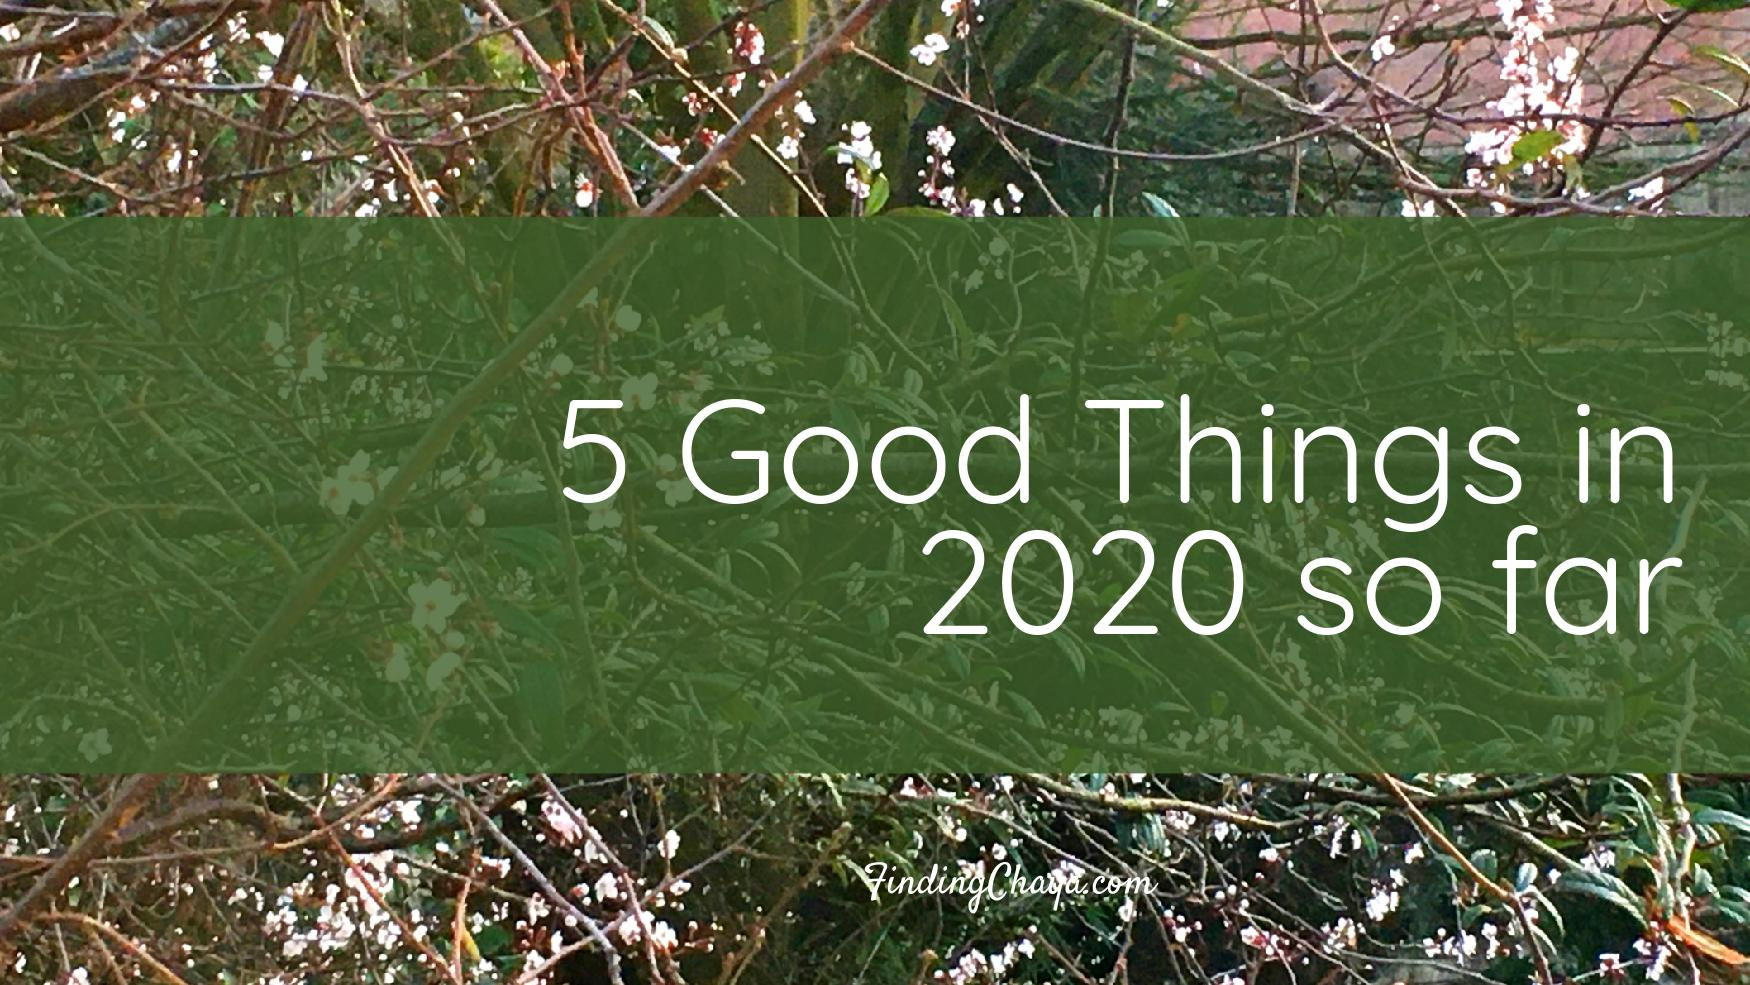 5 Good Things in 2020 so far